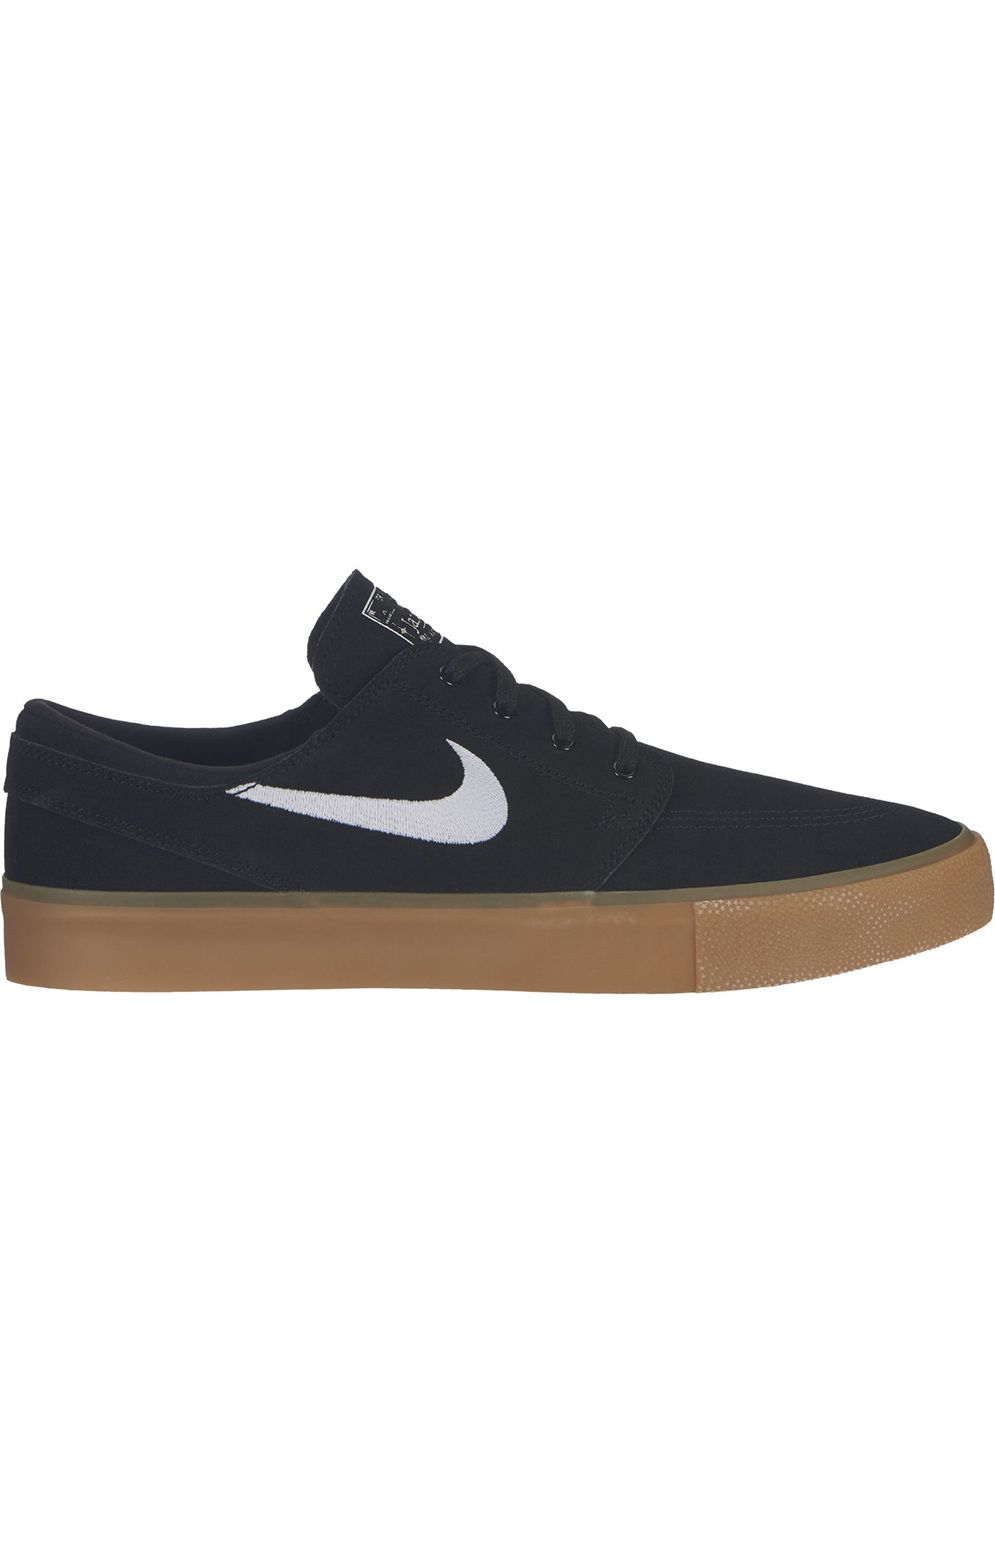 Tenis Nike Sb ZOOM STEFAN JANOSKI RM Black/White-Black-Gum Light Brown